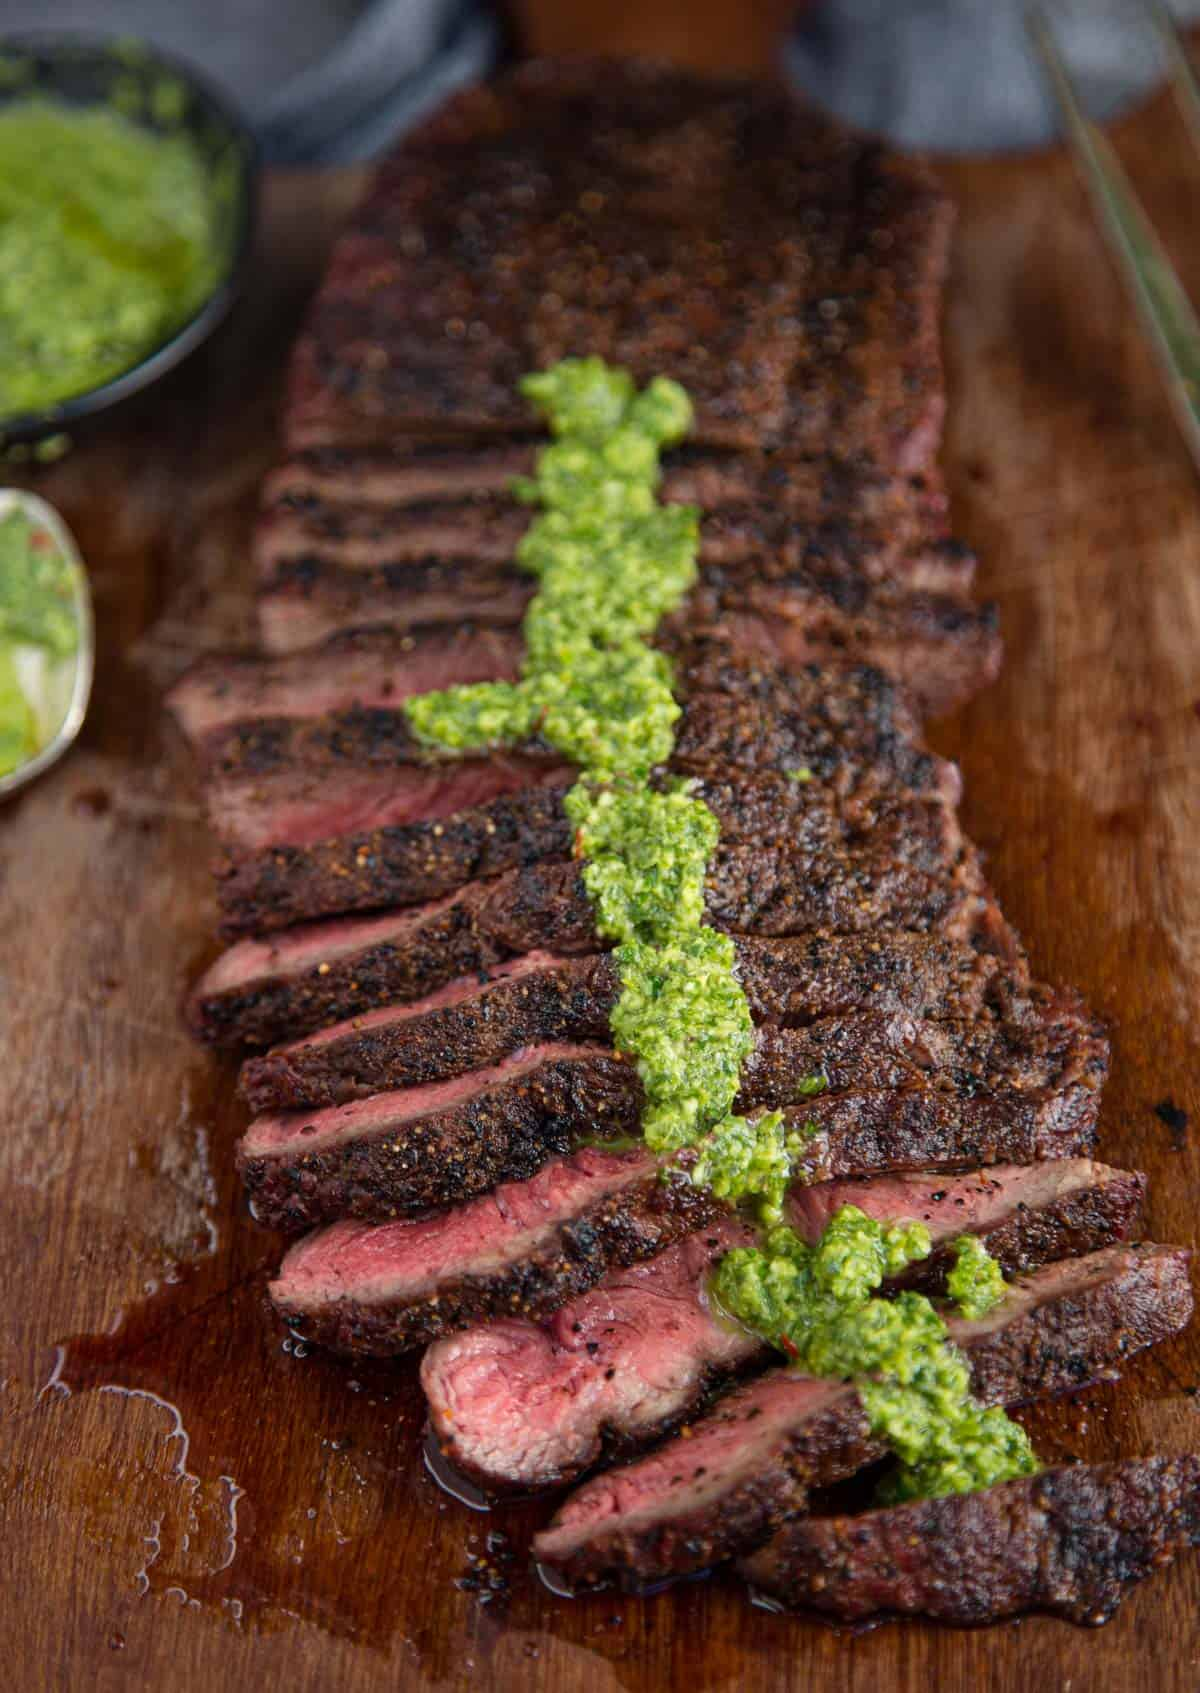 Slices of grilled flat iron steak topped with chimichurri sauce.